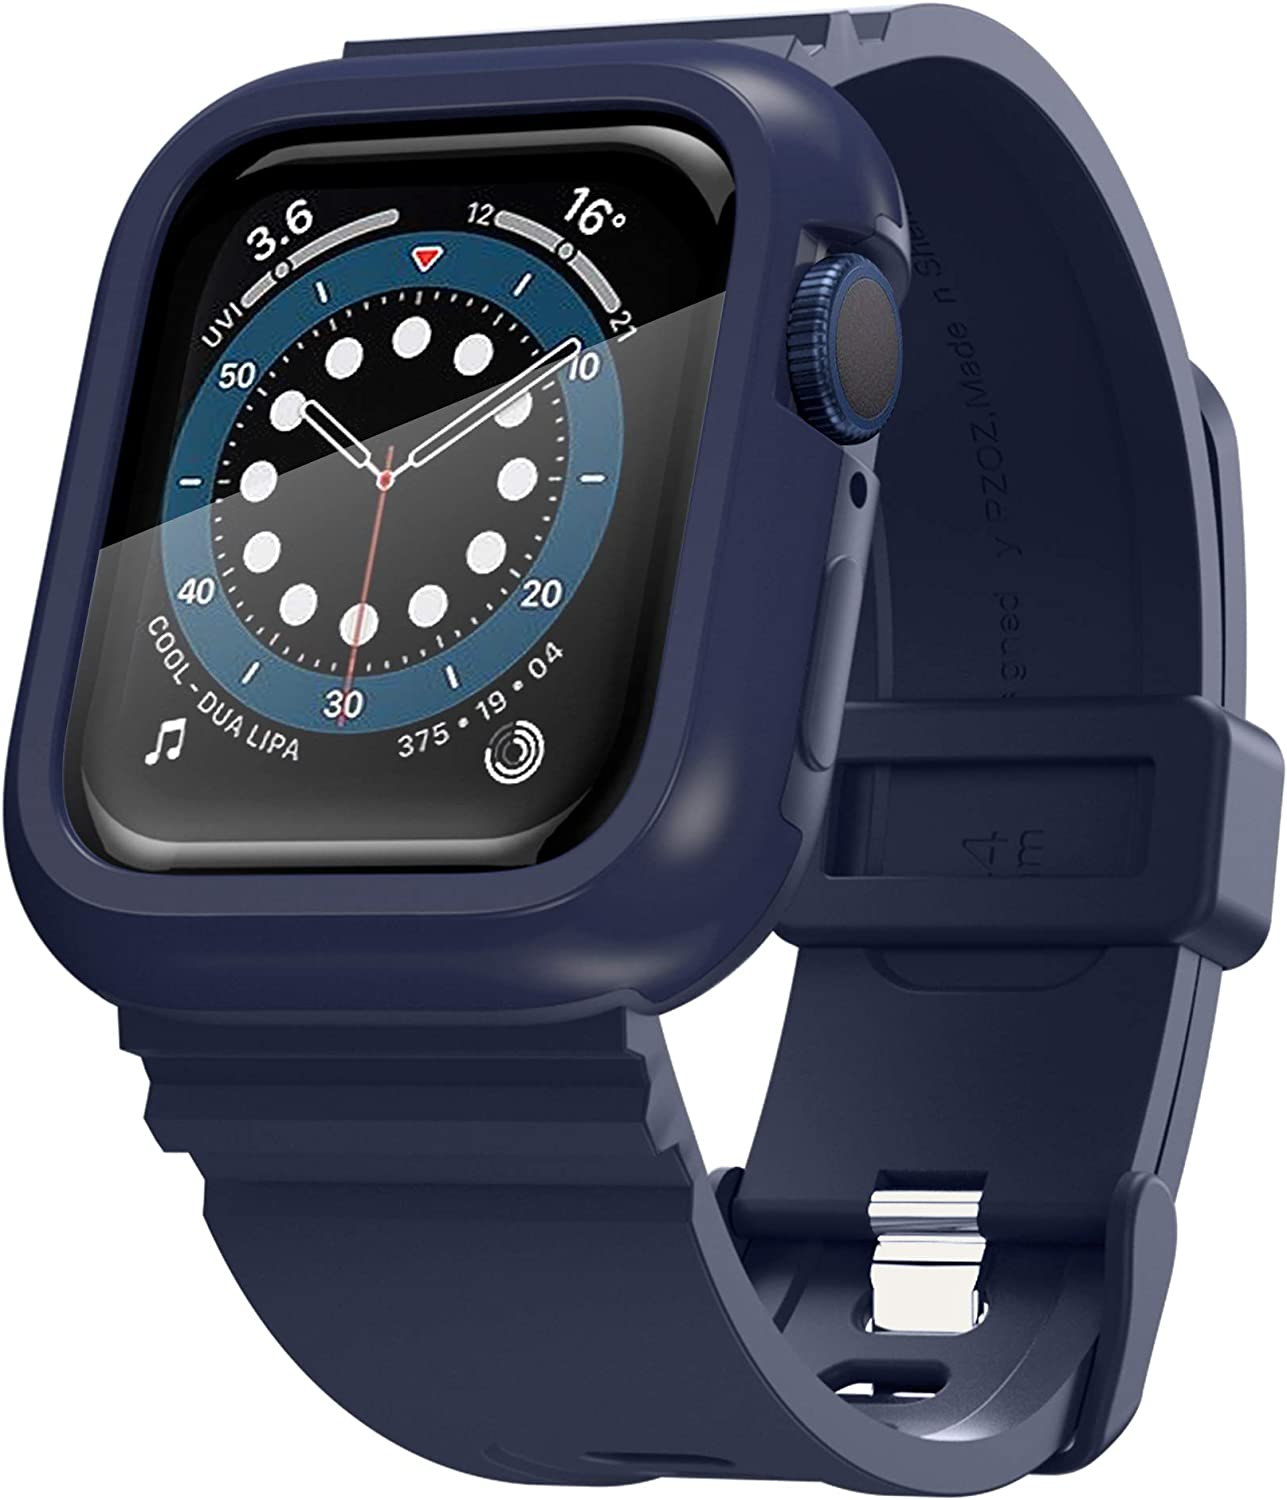 PZOZ Watch Band Case with Screen Protector Compatible for Apple Watch Series SE /4 /5 /6 44mm, Full Coverage Silicone Strap Bumper Defense Cover Edge Accessories for iWatch Women Men (Blue)